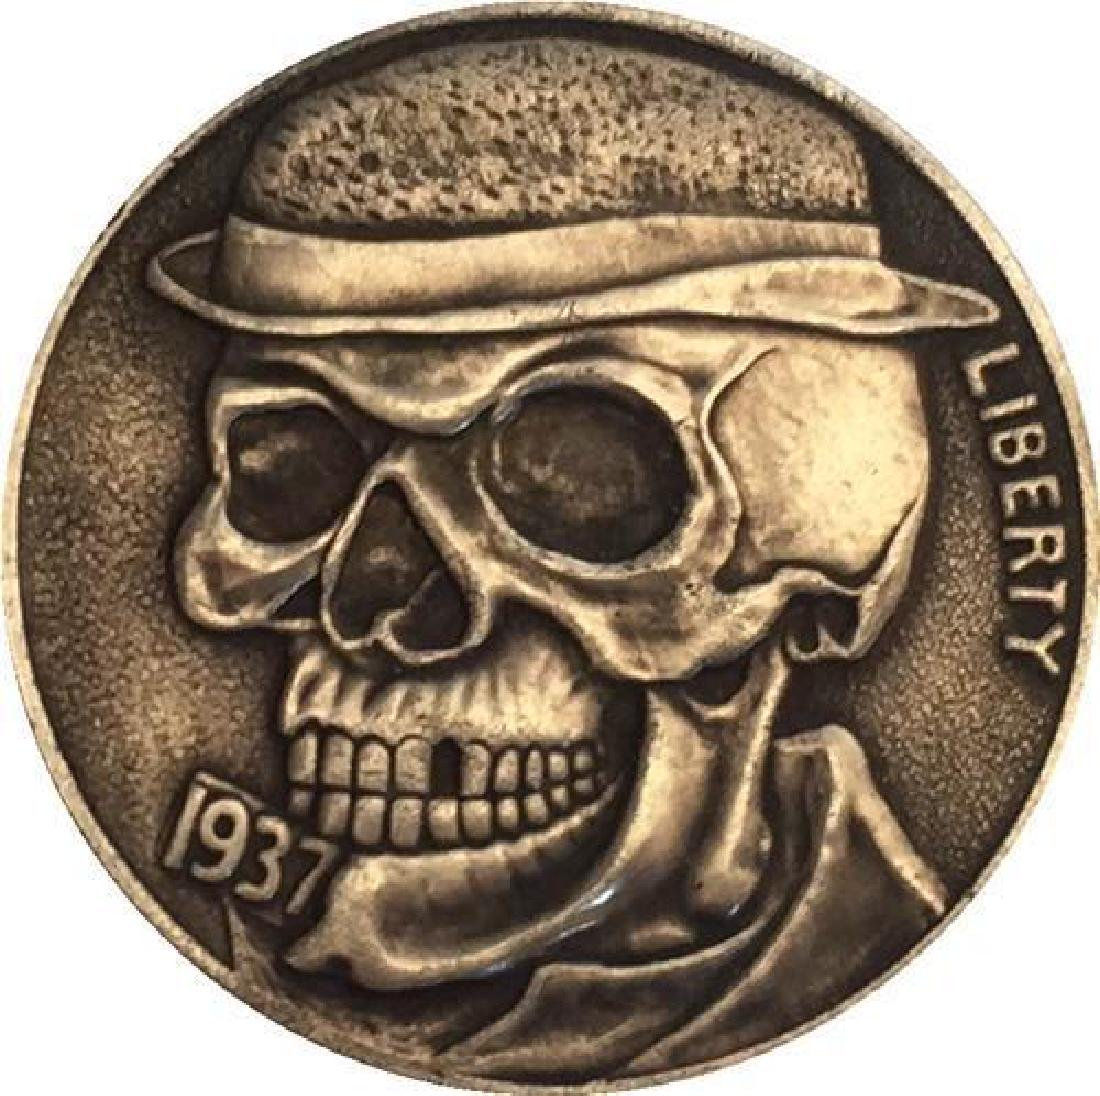 1937 USA Missing Tooth Skeleton Buffalo Coin